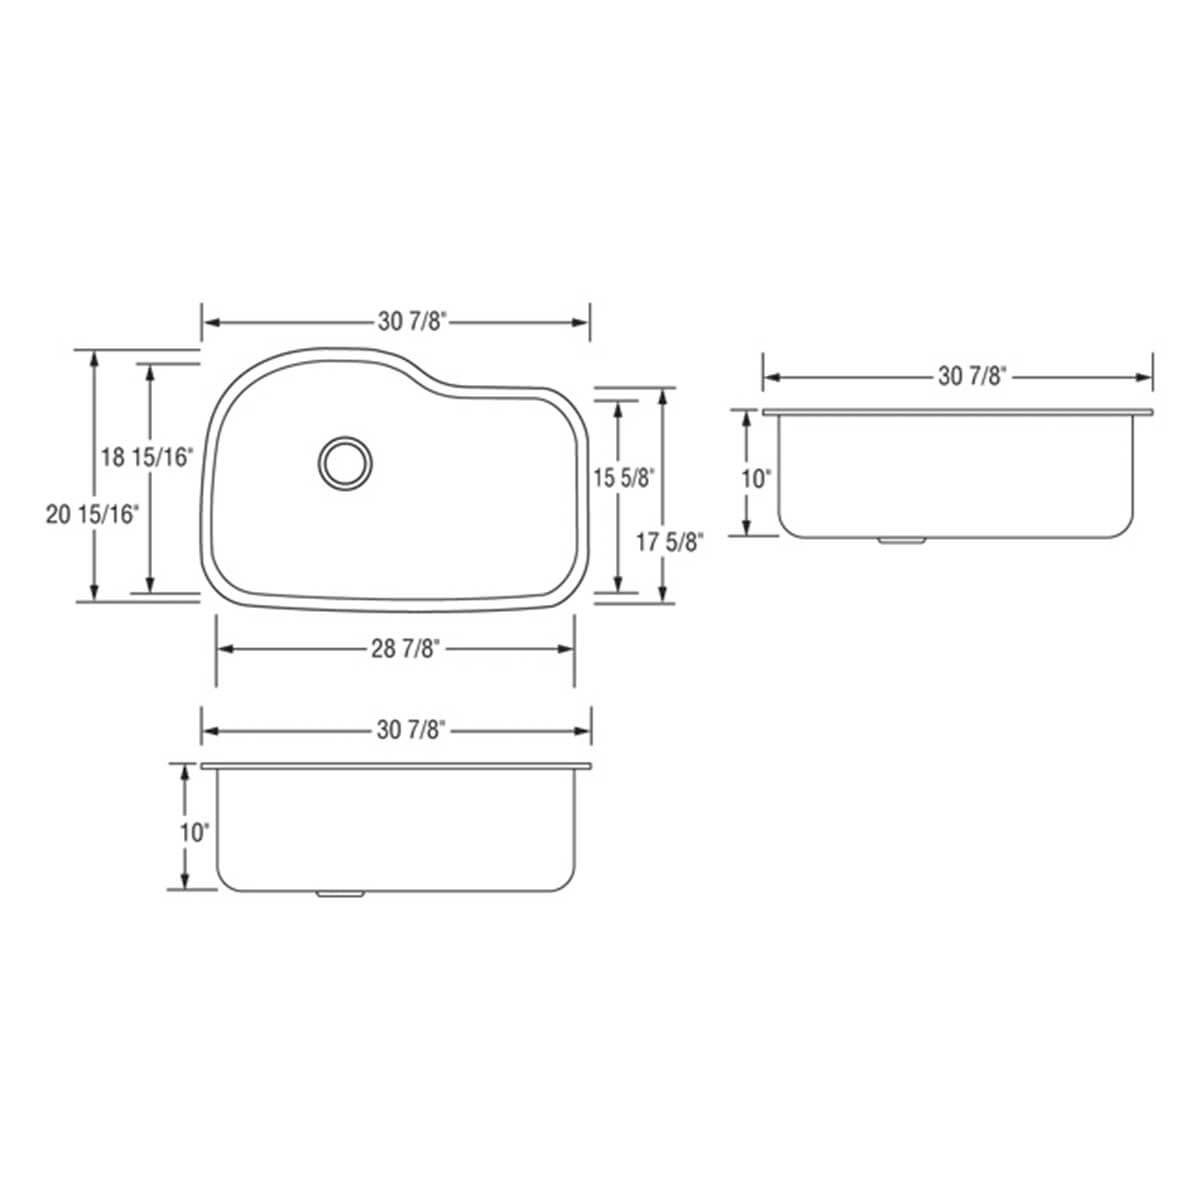 Artisan sink AR3120-D10 drawing